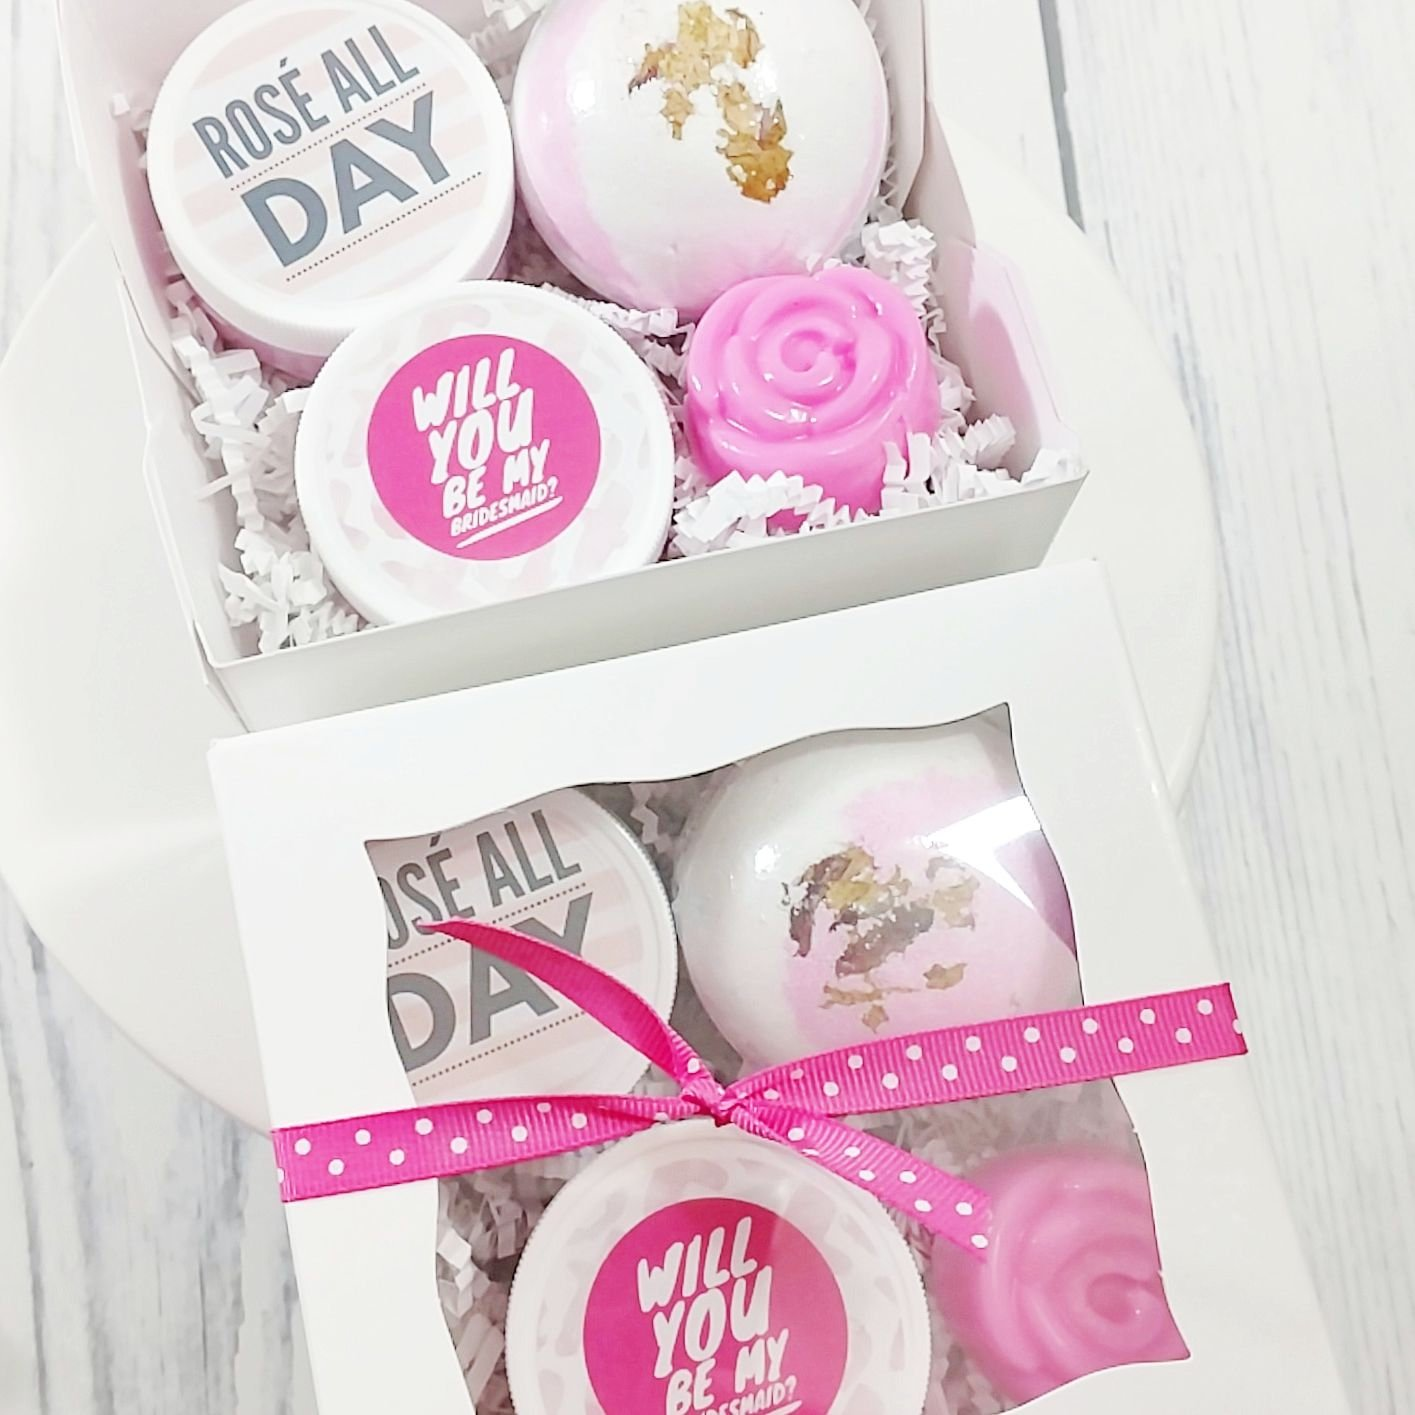 c6b2d7b76b4963 Will You Be My Bridesmaid Gift Set - Handmade Bath Gifts